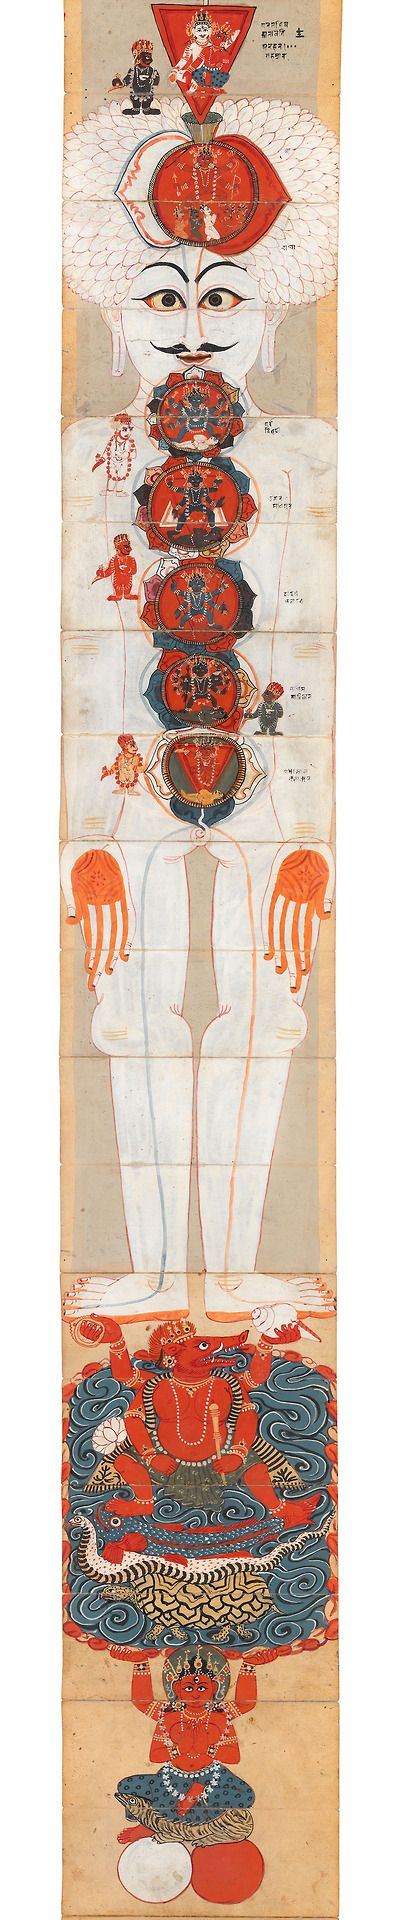 The chakras of the subtle body, Nepal, 18th century. Source: Asianart.com